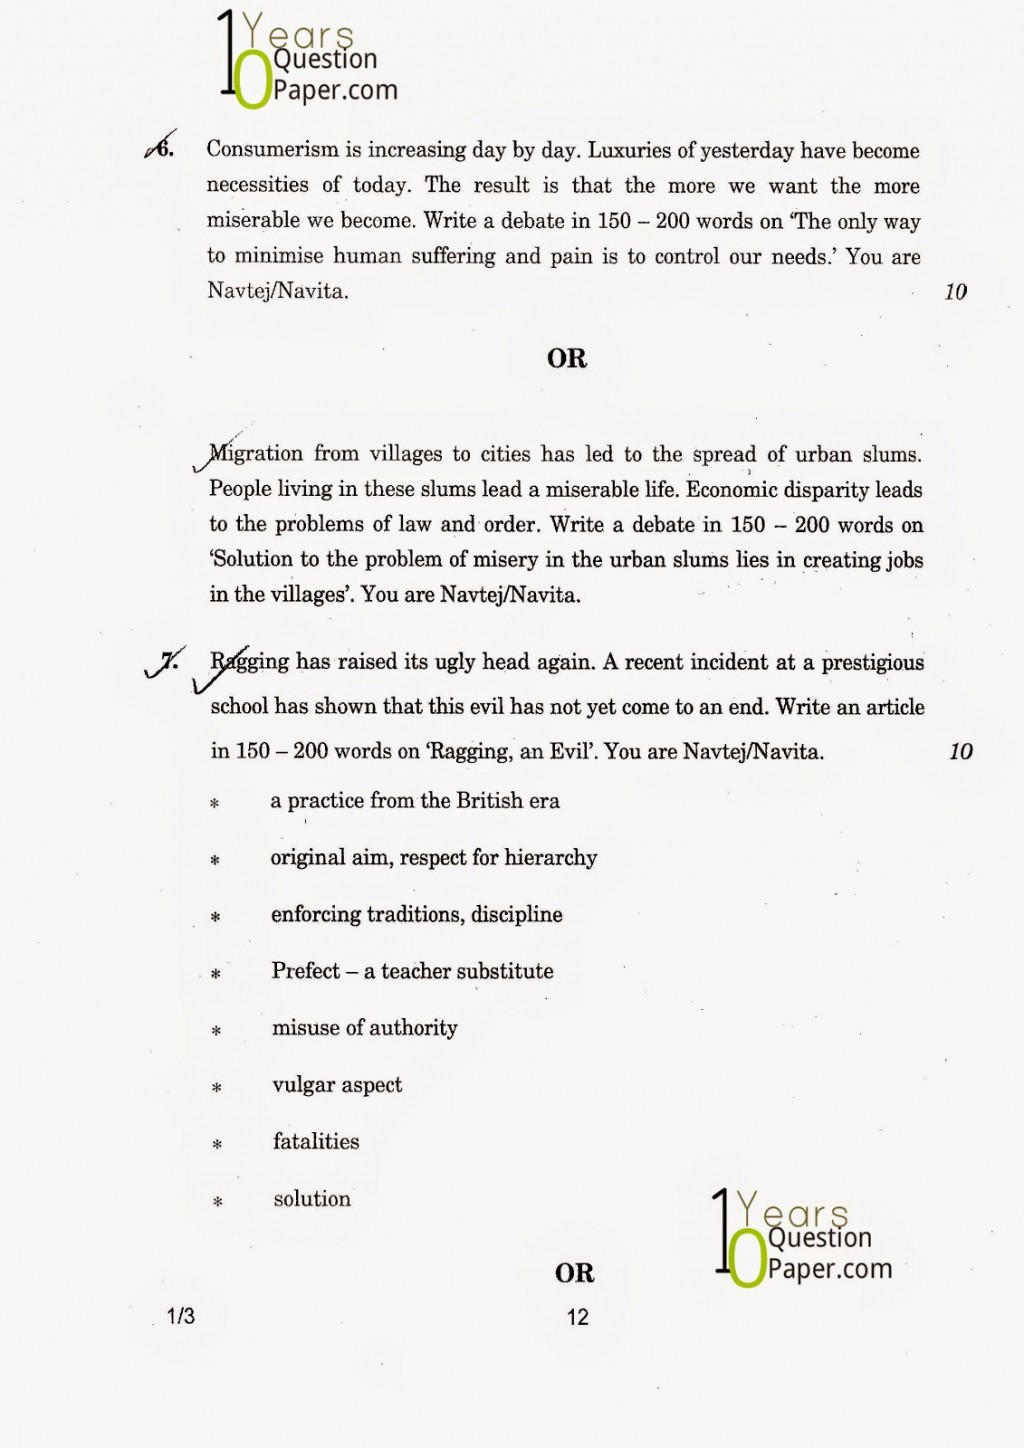 007 Research Paper Cbse English Set Jpg For Writing Papers Adrian Wallwork Marvelous Pdf 2011 Large